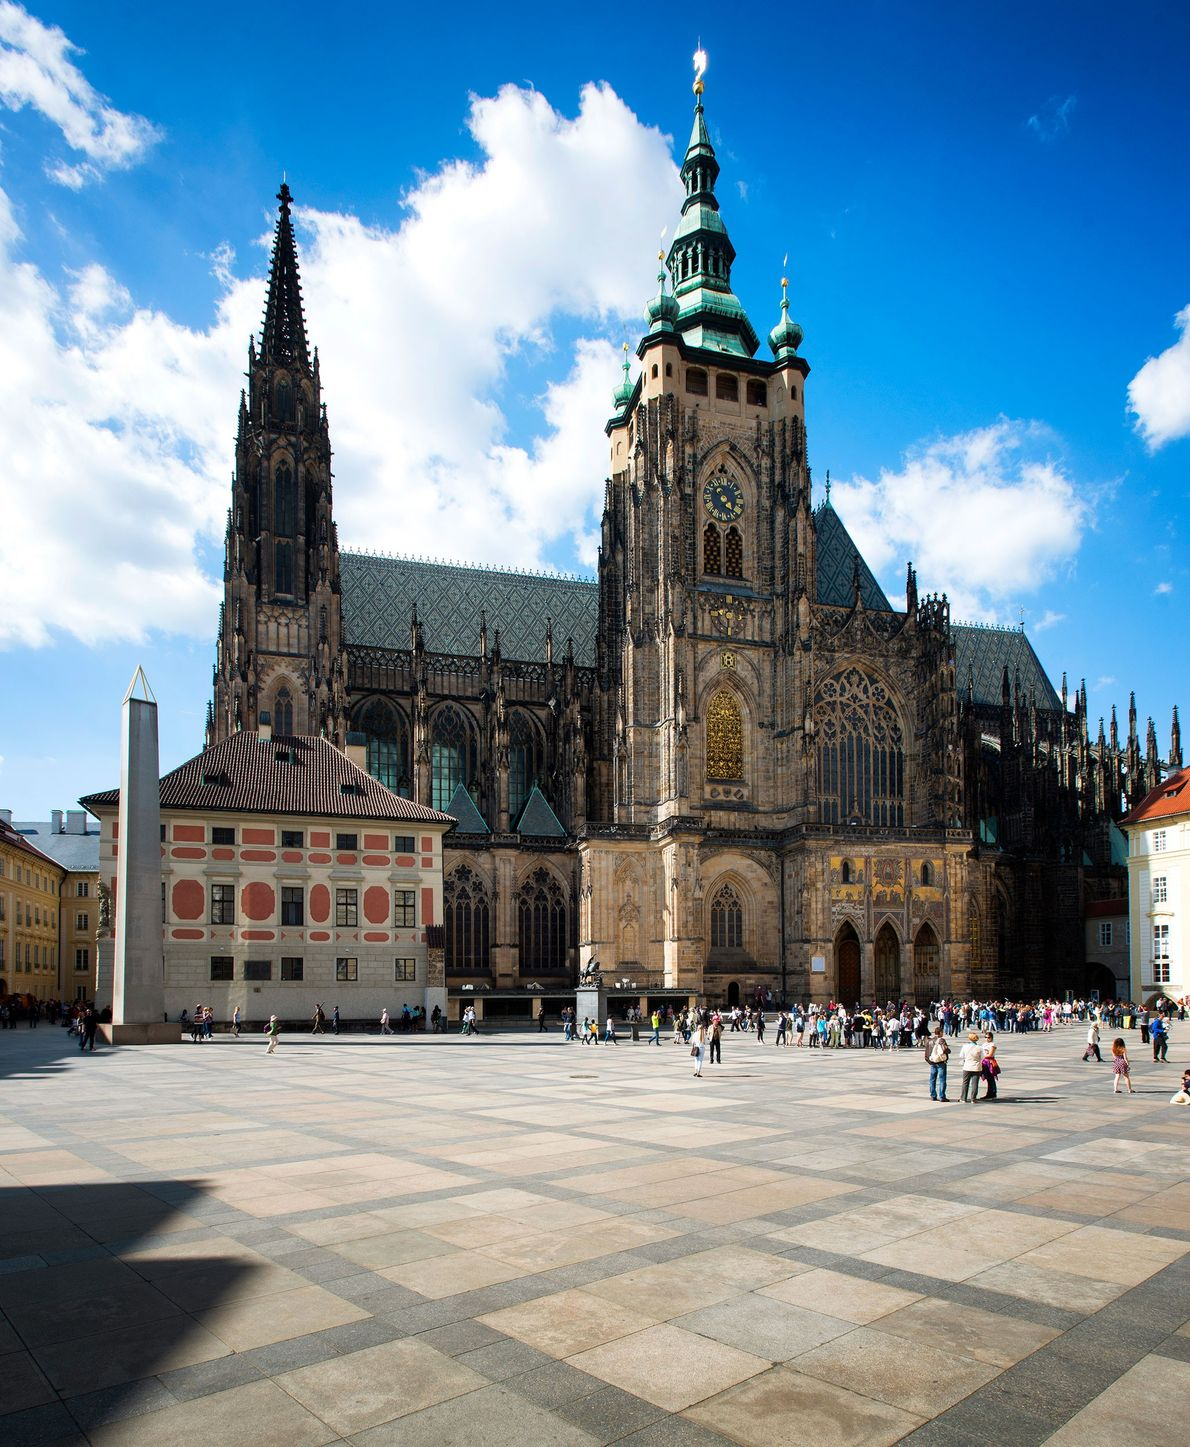 St. Vitus Cathedral, Czech Republic